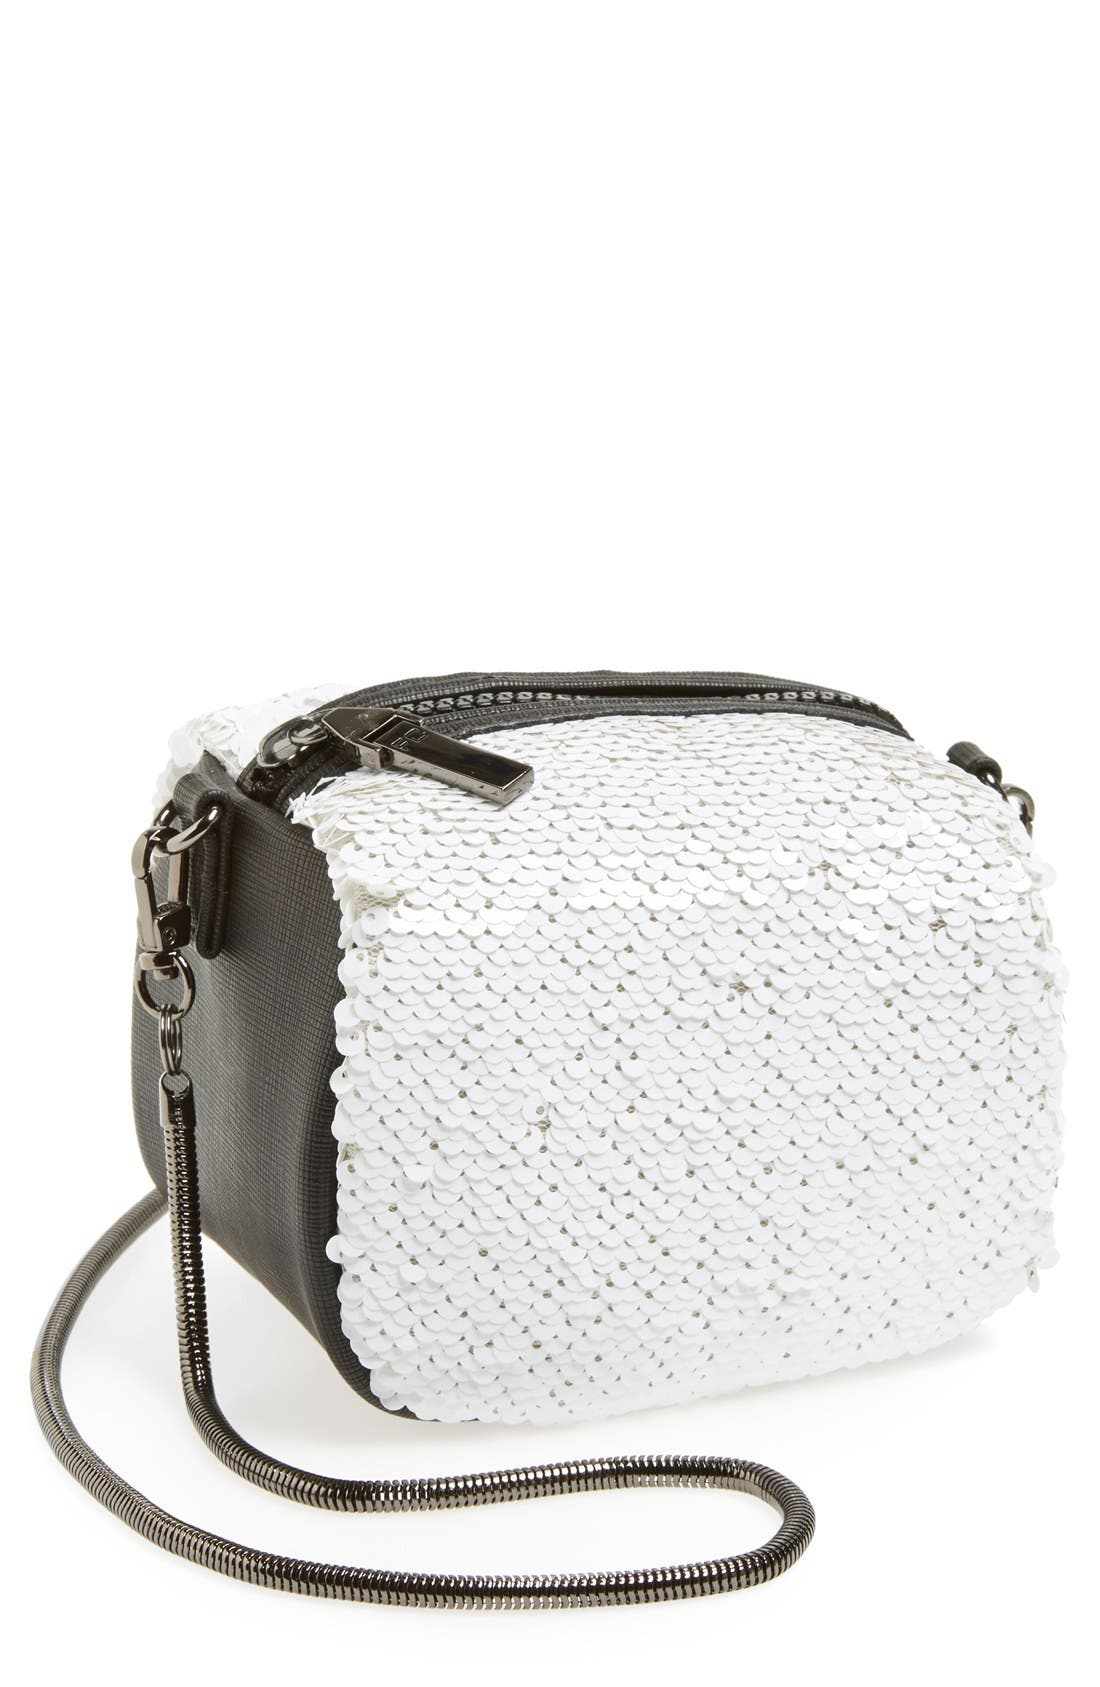 Alternate Image 1 Selected - French Connection 'Mini Sequin' Crossbody